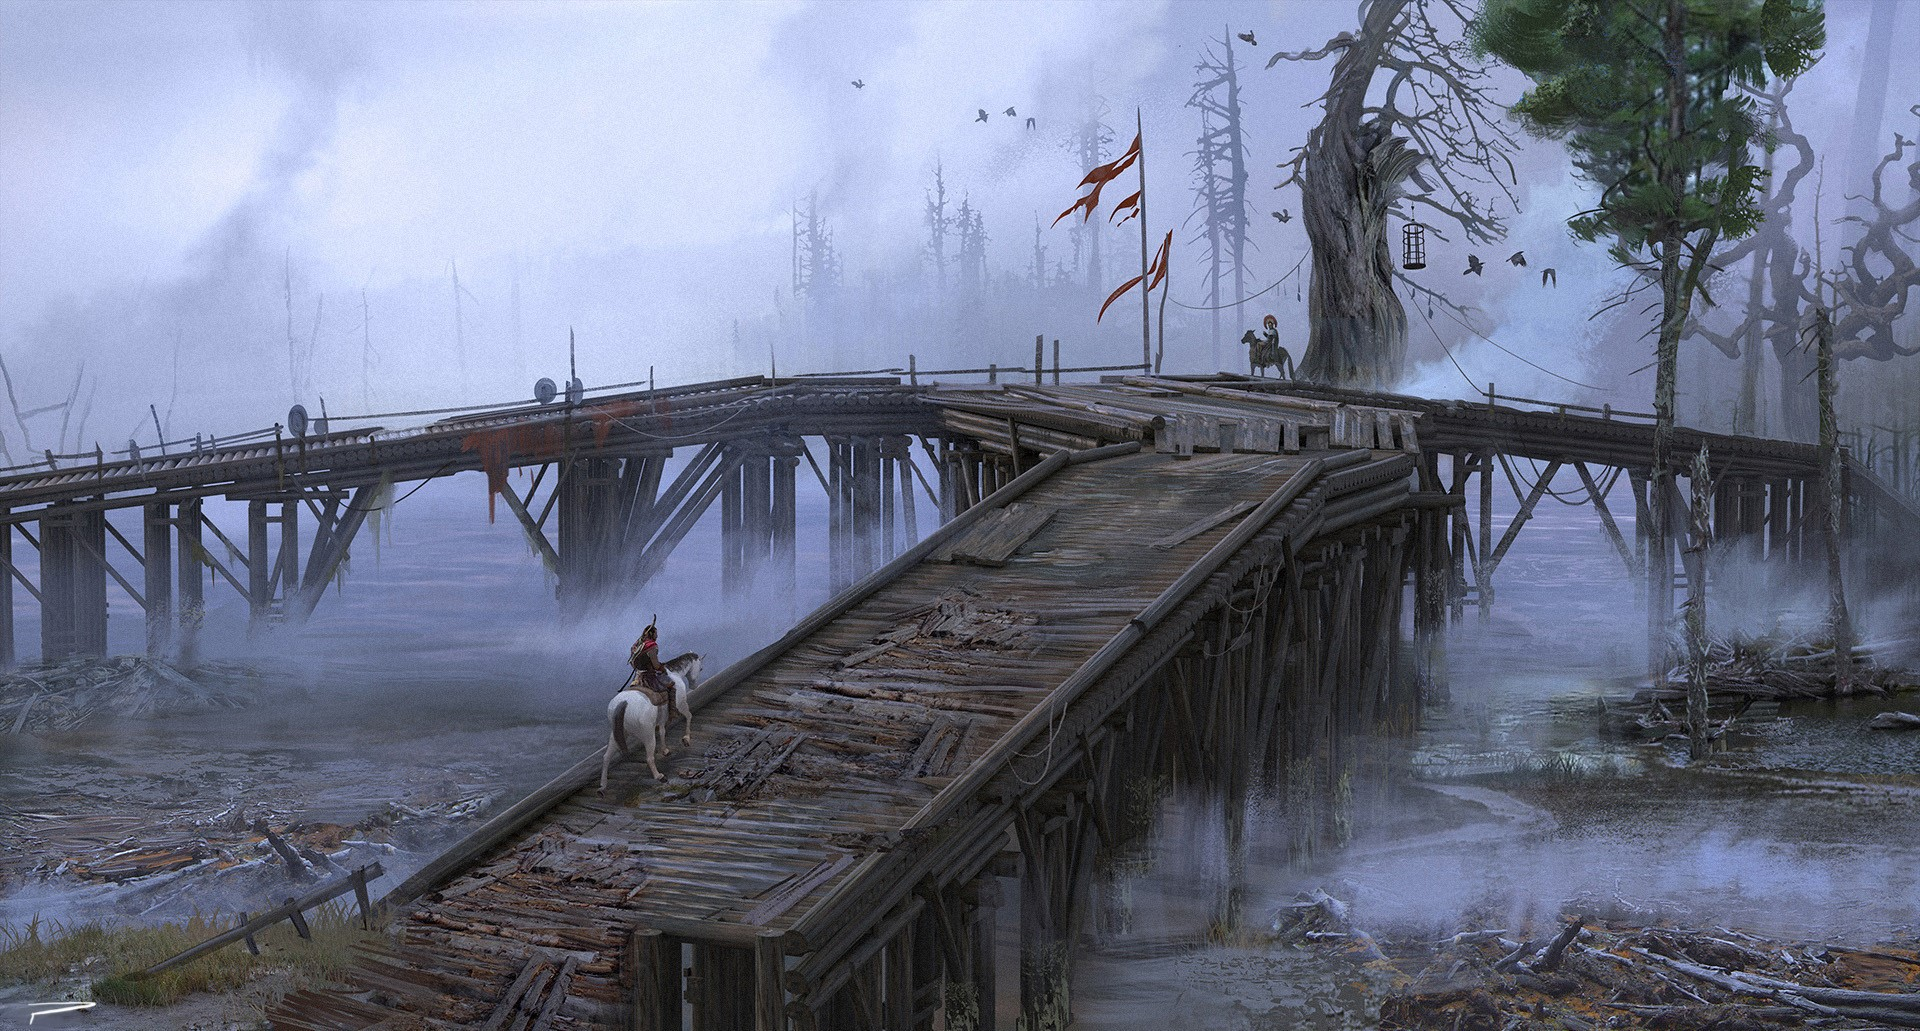 © Hugo Puzzuoli, Wood Bridge, Assassin's Creed Odyssey, Ubisoft.